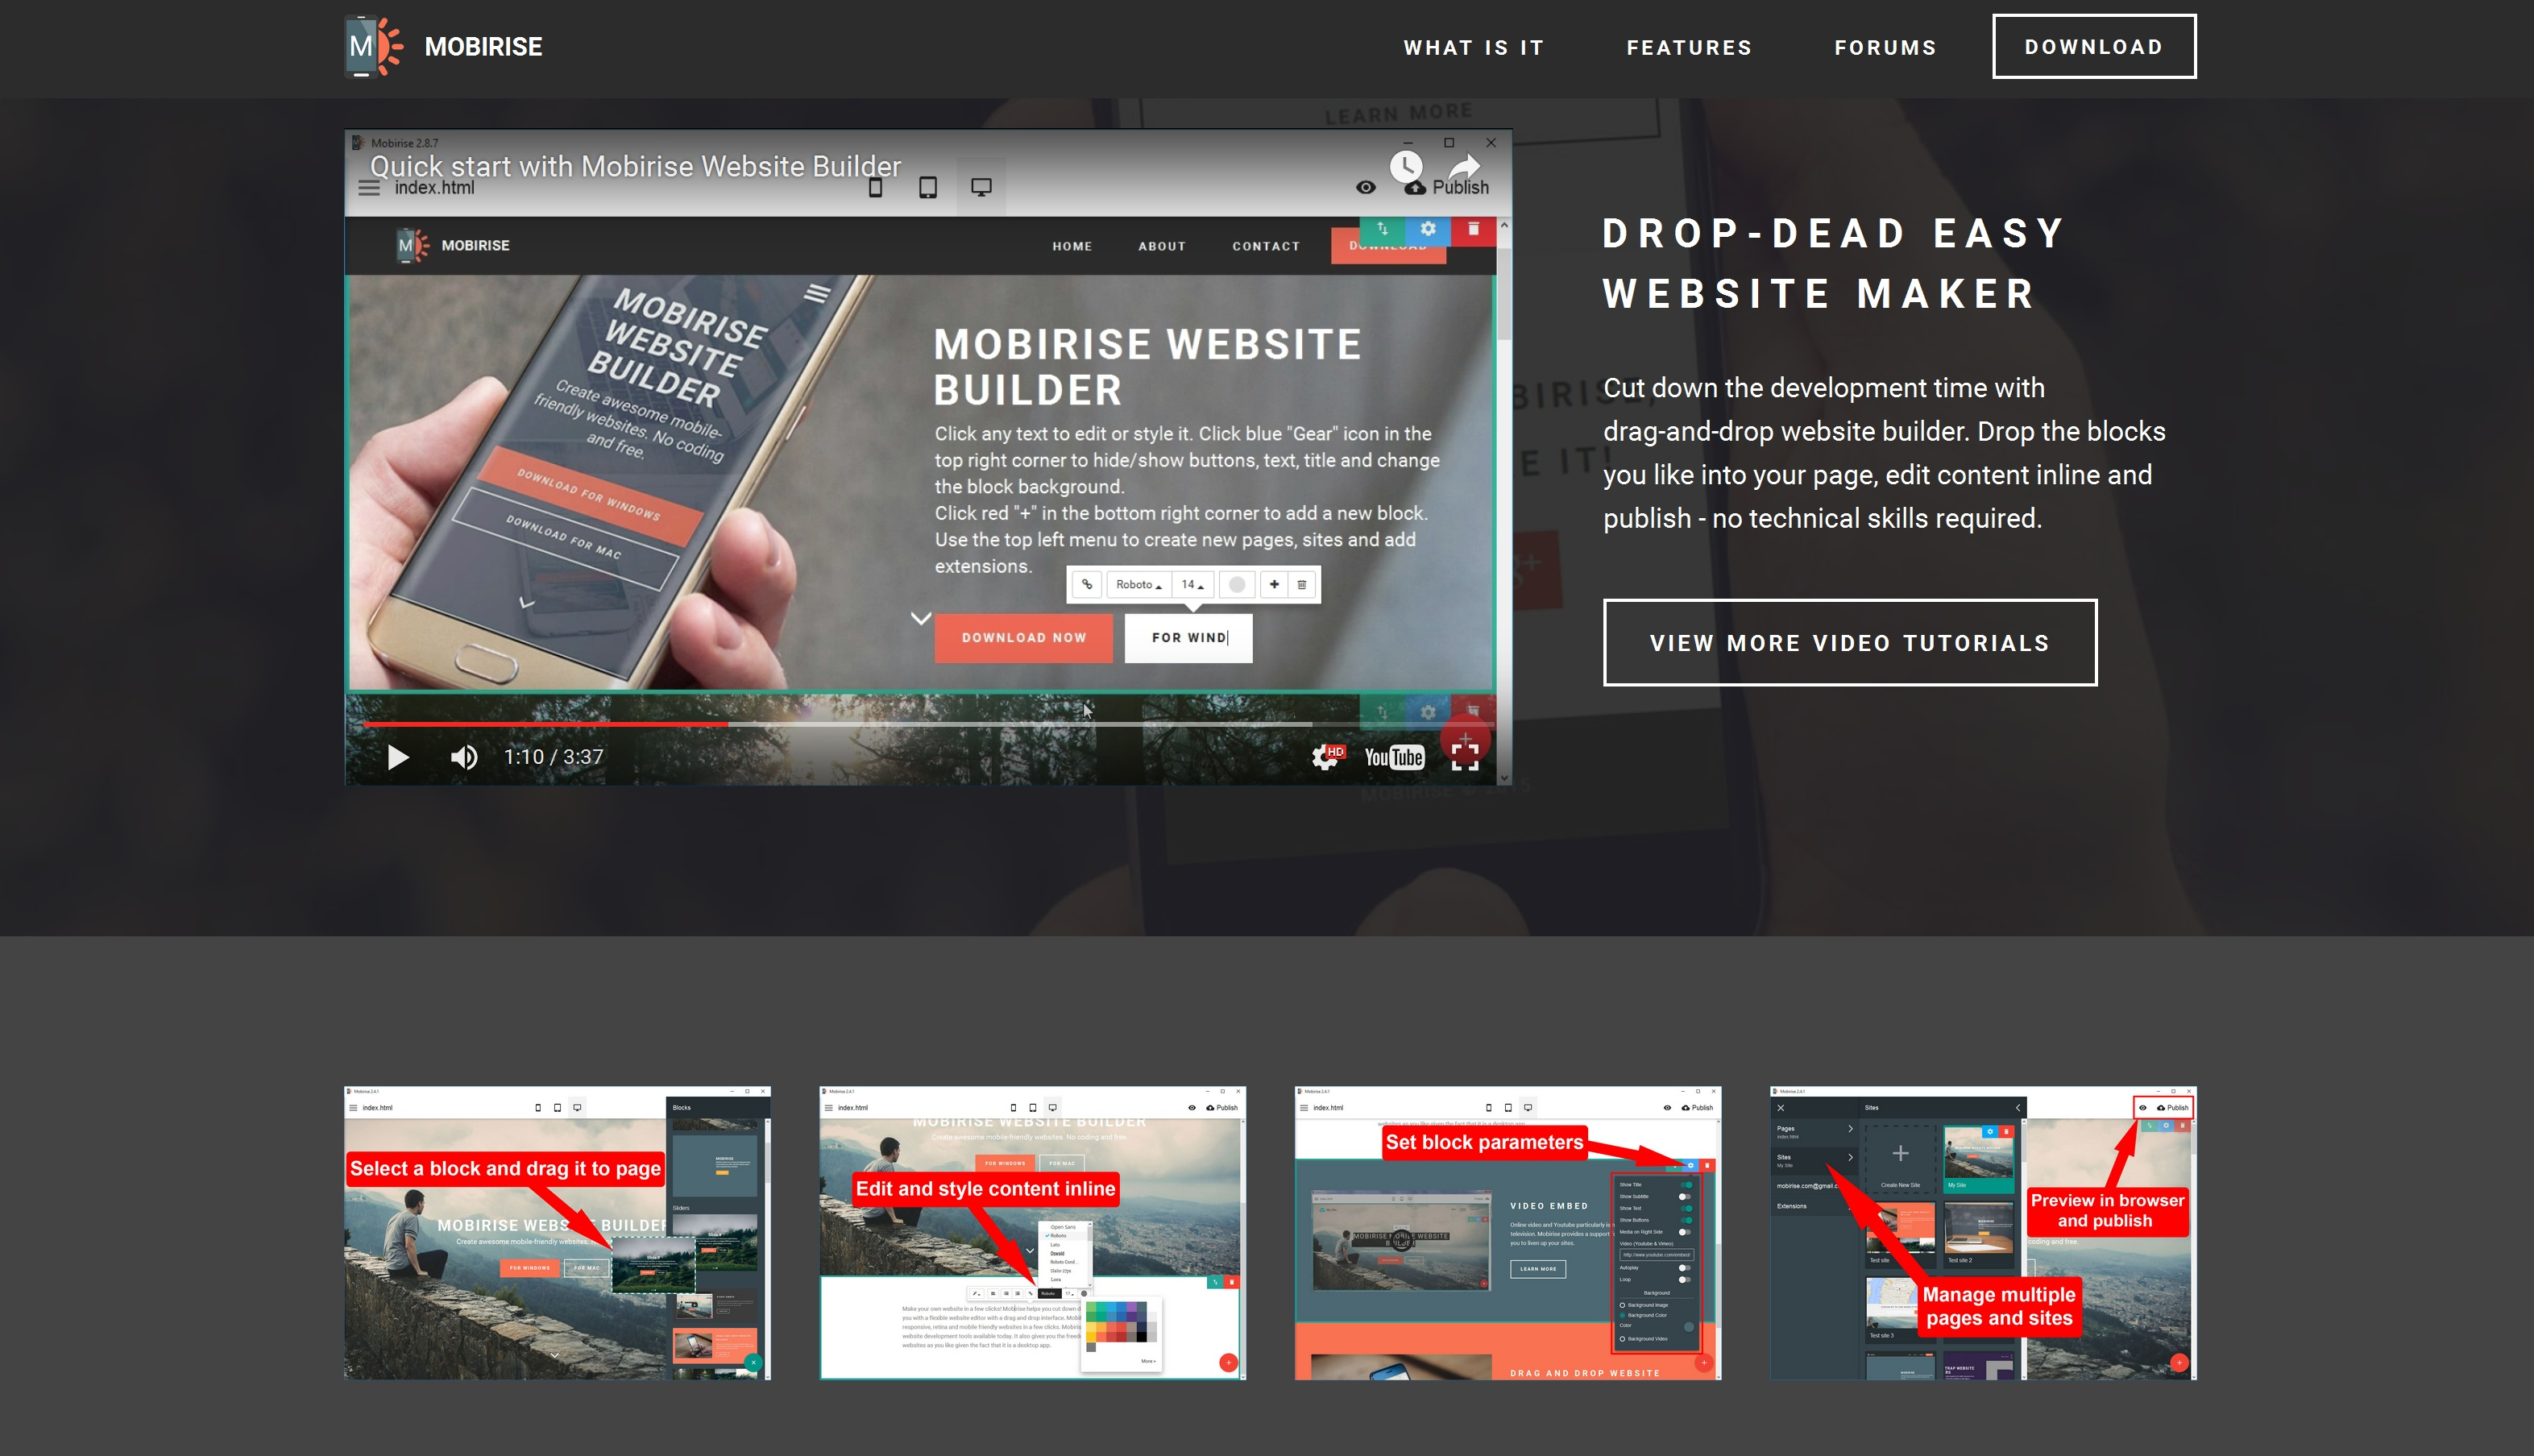 WYSIWYG Mobile Website Builder Review